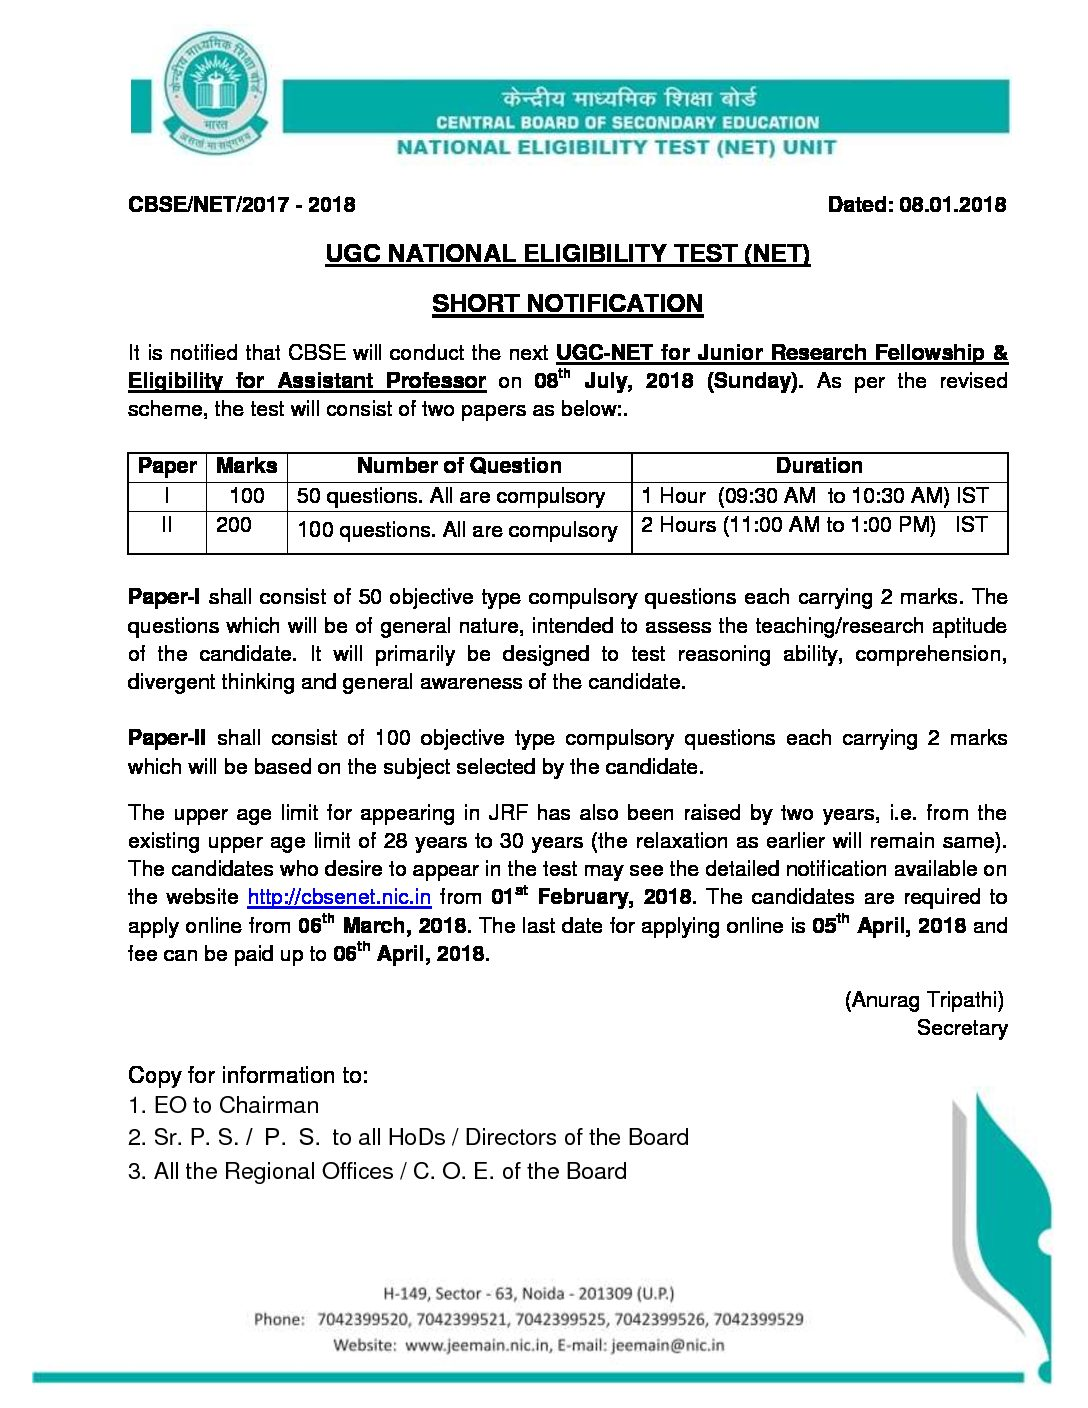 CBSE UCG NET JULY 2018: APPLY LINK ACTIVATED